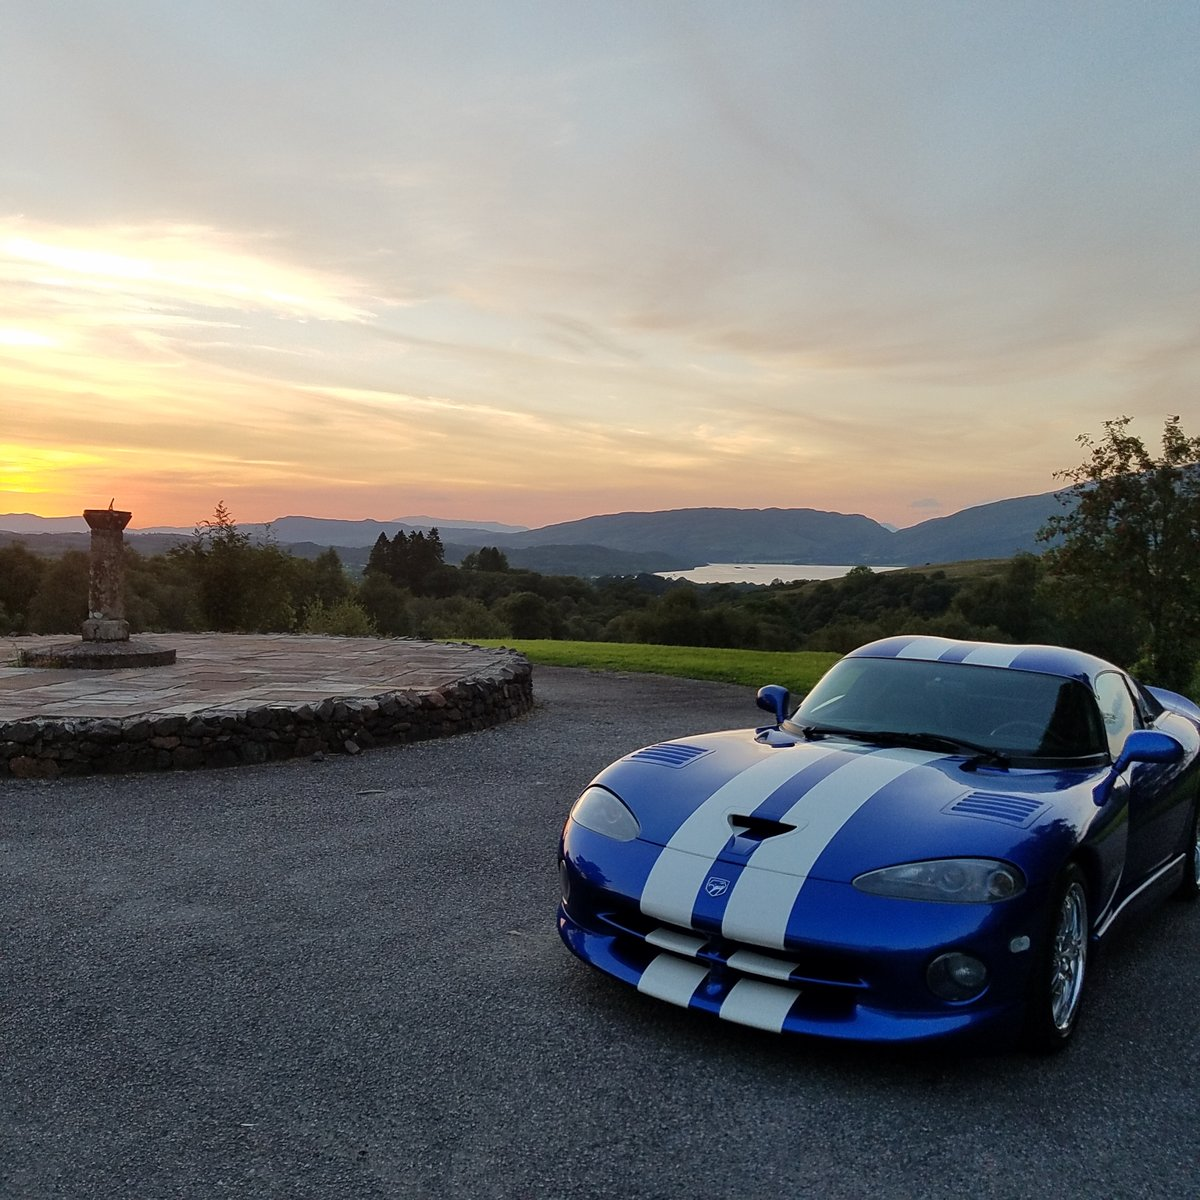 1997 Roe Supercharged Viper GTS For Sale (picture 1 of 5)